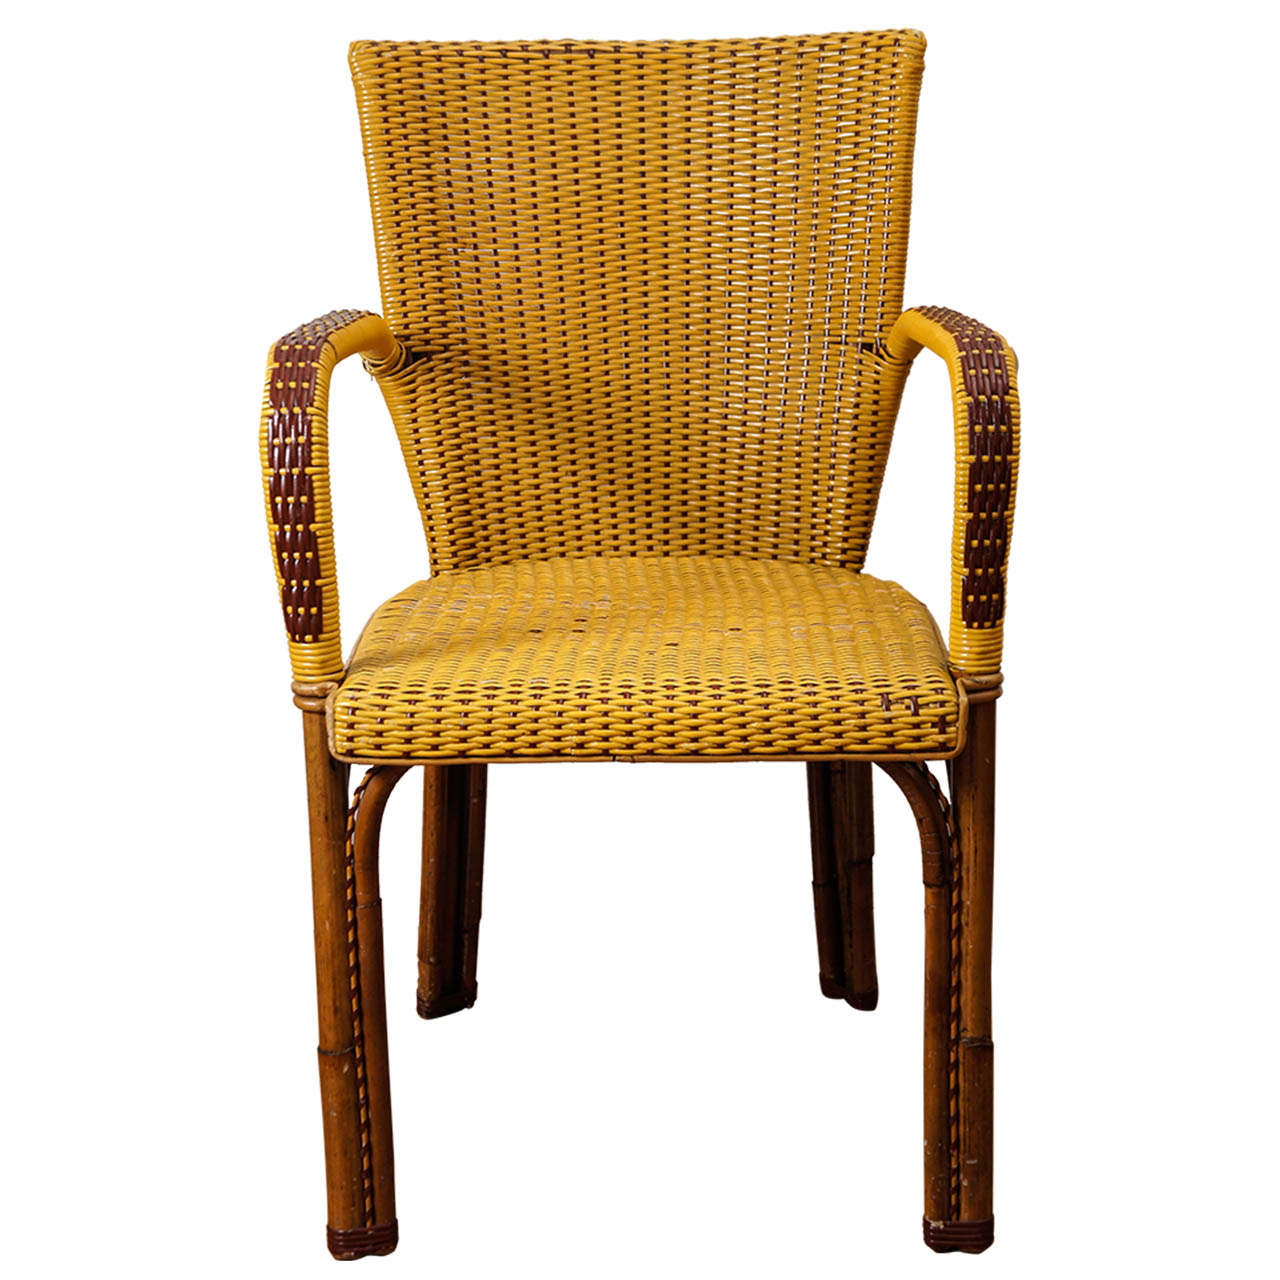 French Wicker Bistro Chairs For Sale At 1stdibs